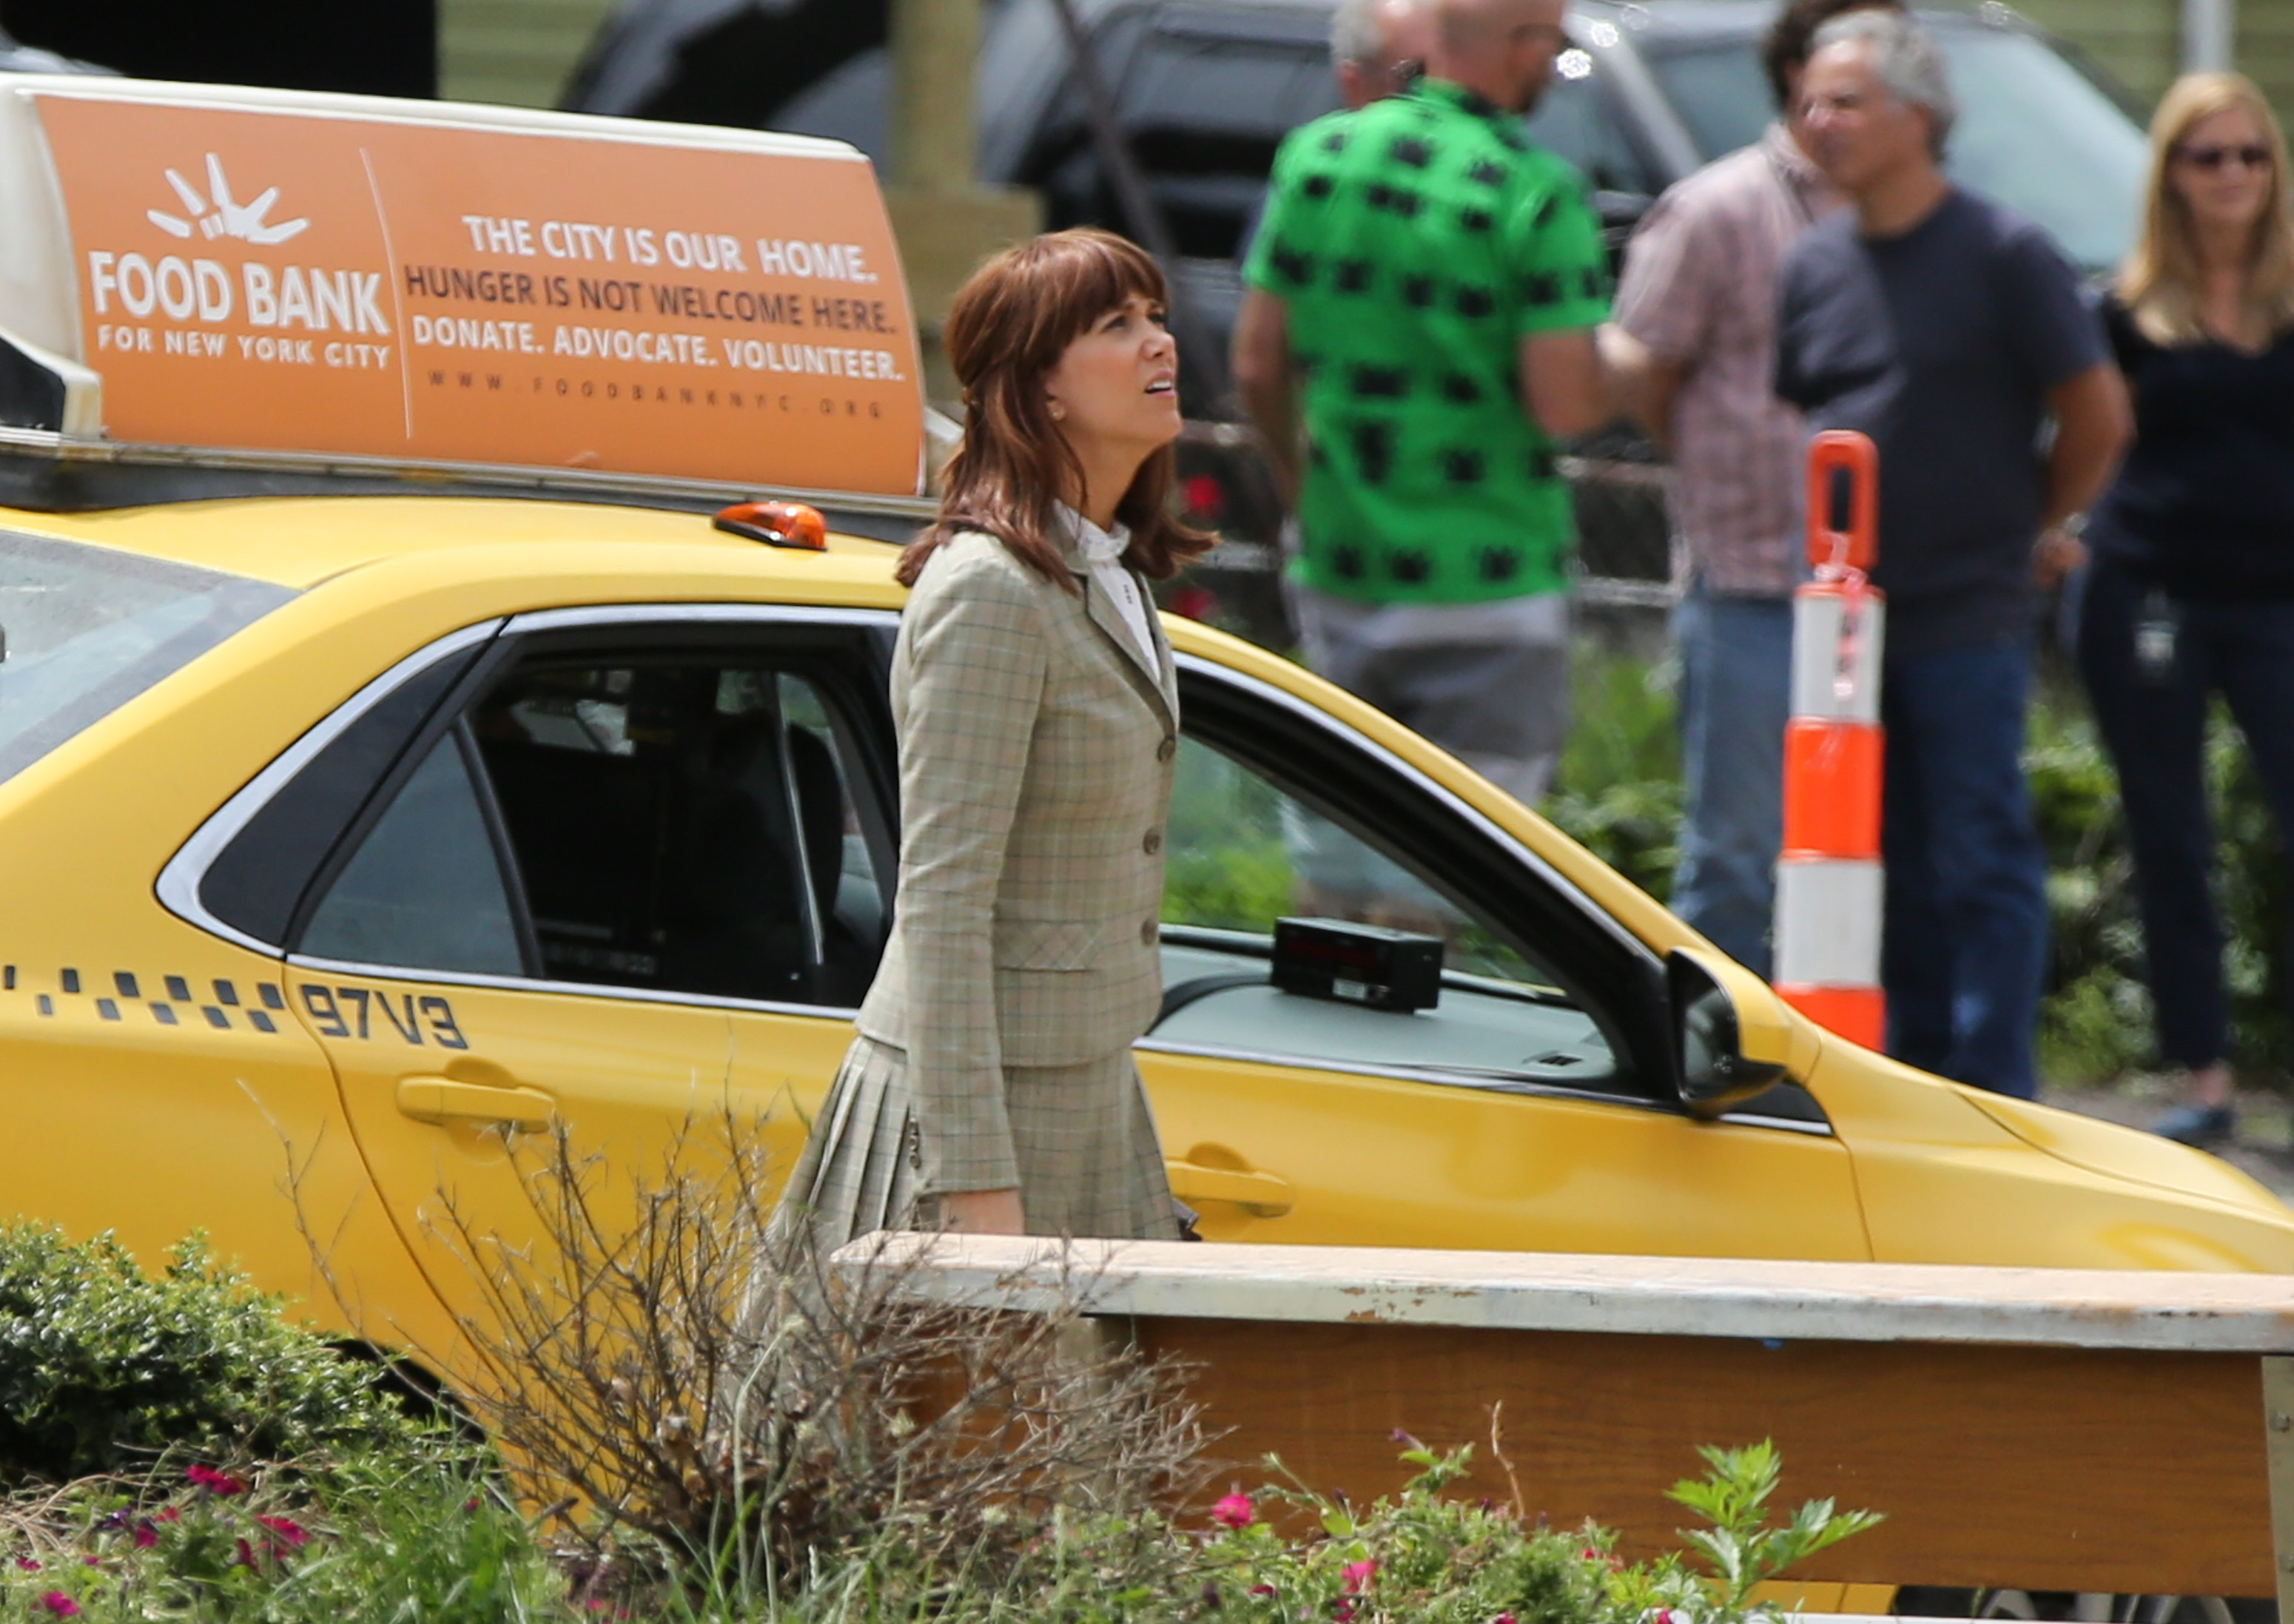 Kristen Wiig is seen on the set of 'Ghostbuster' in Boston on June 18, 2015 in Boston, Massachusetts.